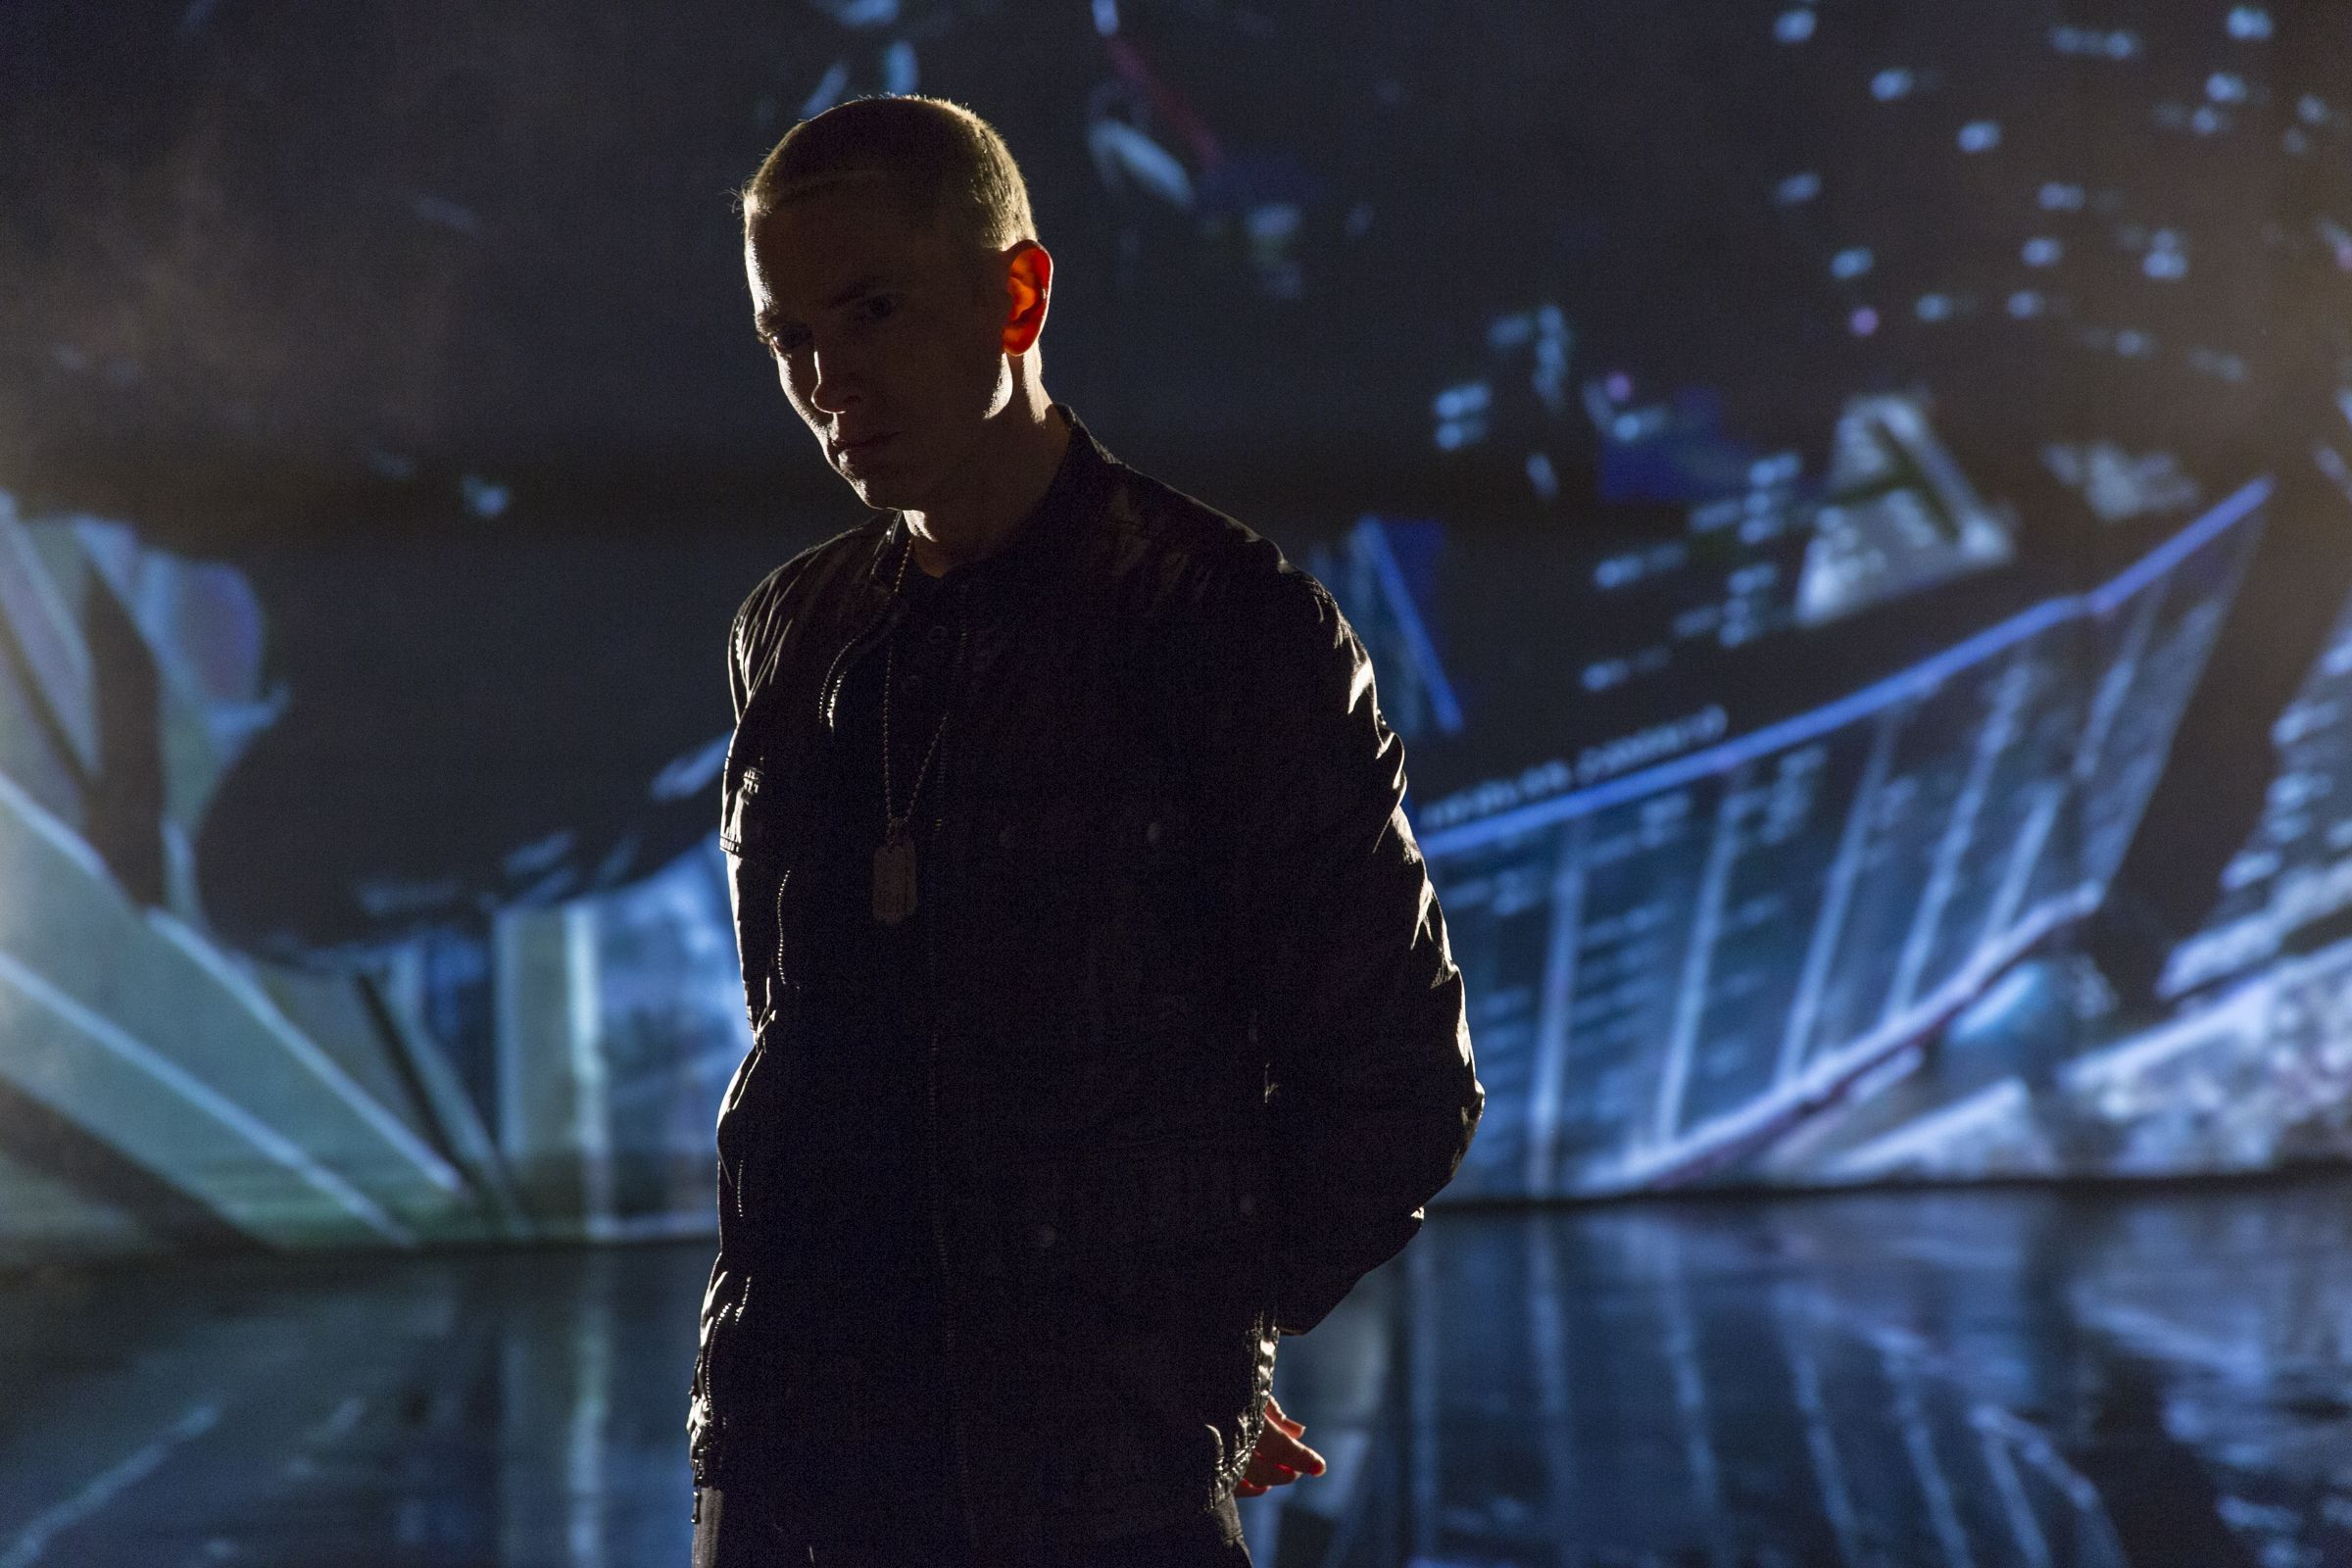 Eminem   Survival wallpaper 2400x1600 181049 WallpaperUP 2400x1600